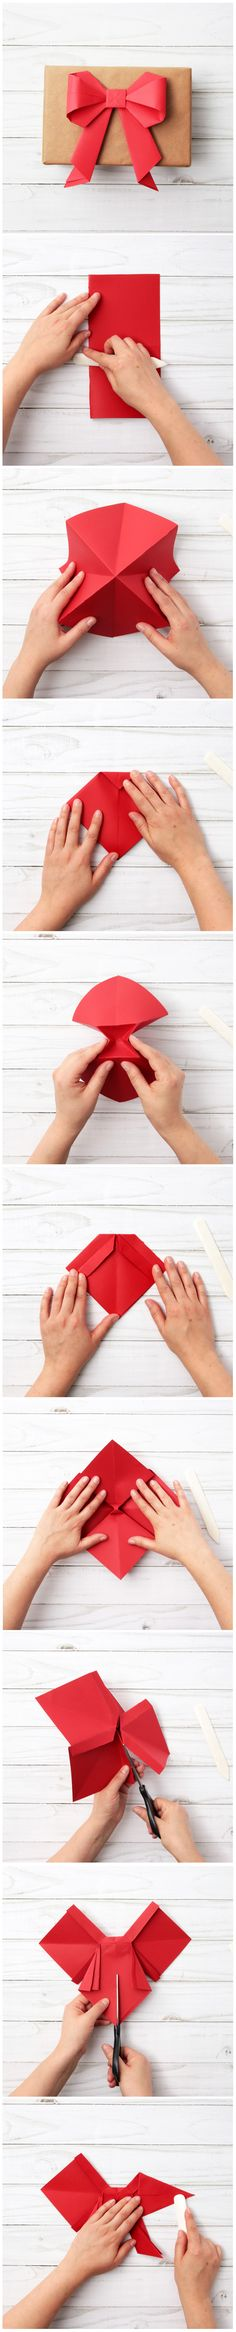 Ideas Origami Diy Gift Craft Ideas For 2019 Diy Crafts For Gifts, Christmas Crafts, Crafts For Kids, Christmas Decorations, Kids Diy, Kids Christmas, Christmas Projects, Diy Cadeau Noel, Paper Party Decorations